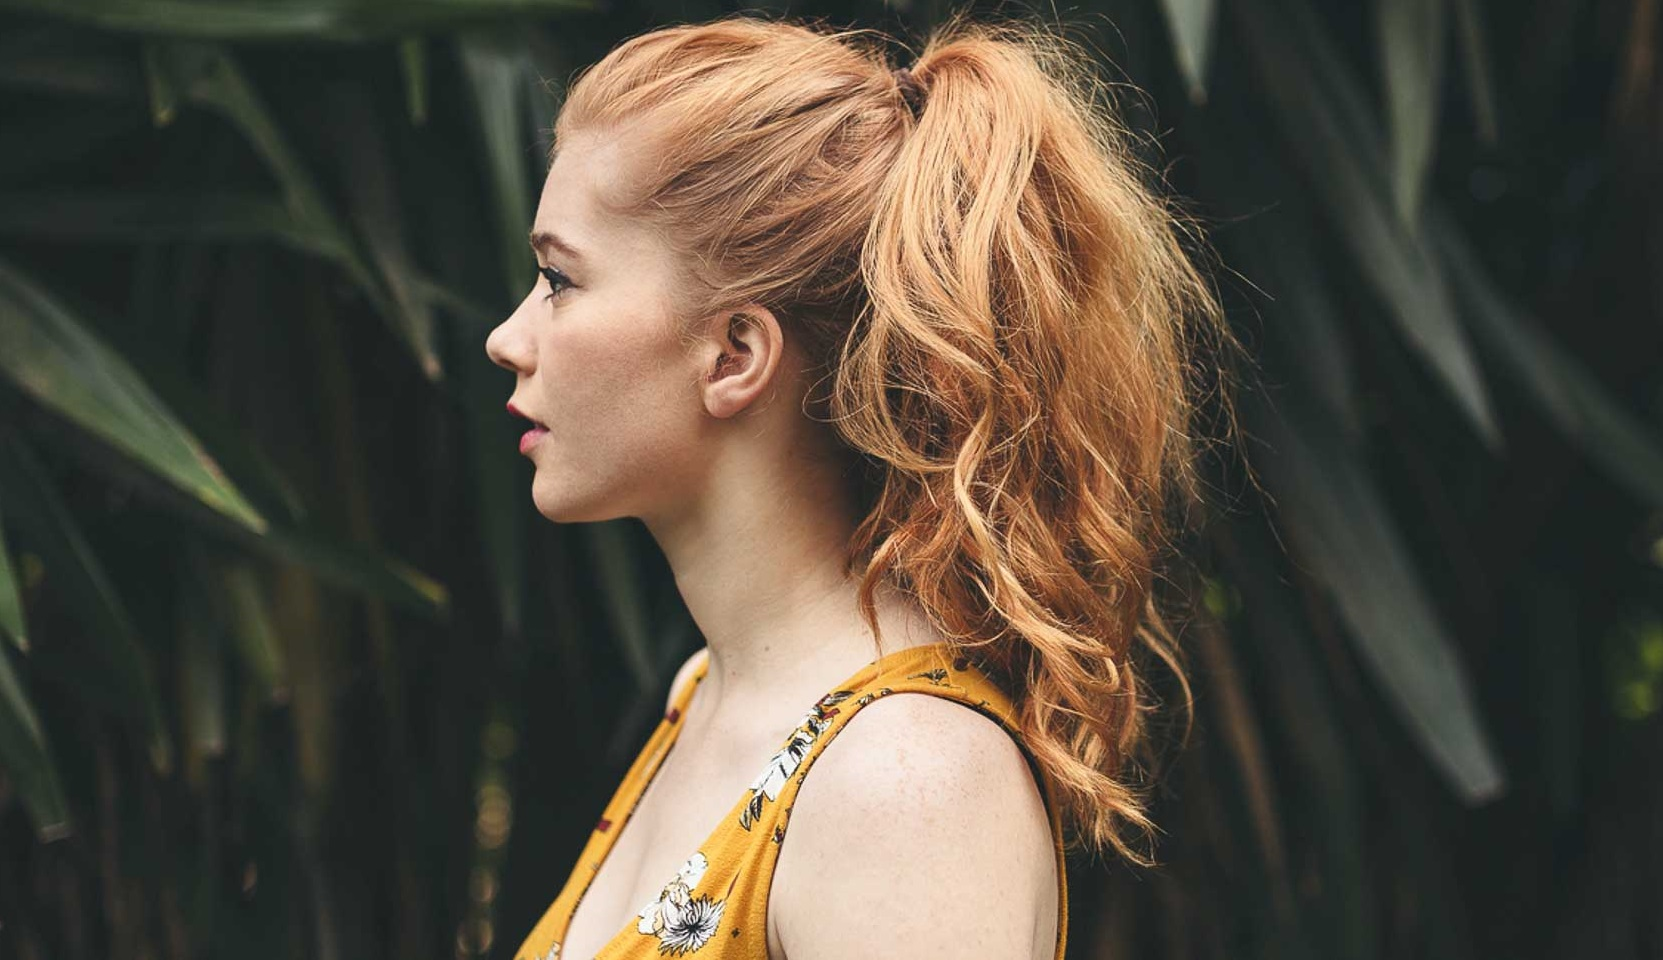 Profile view of a redhead woman among trees